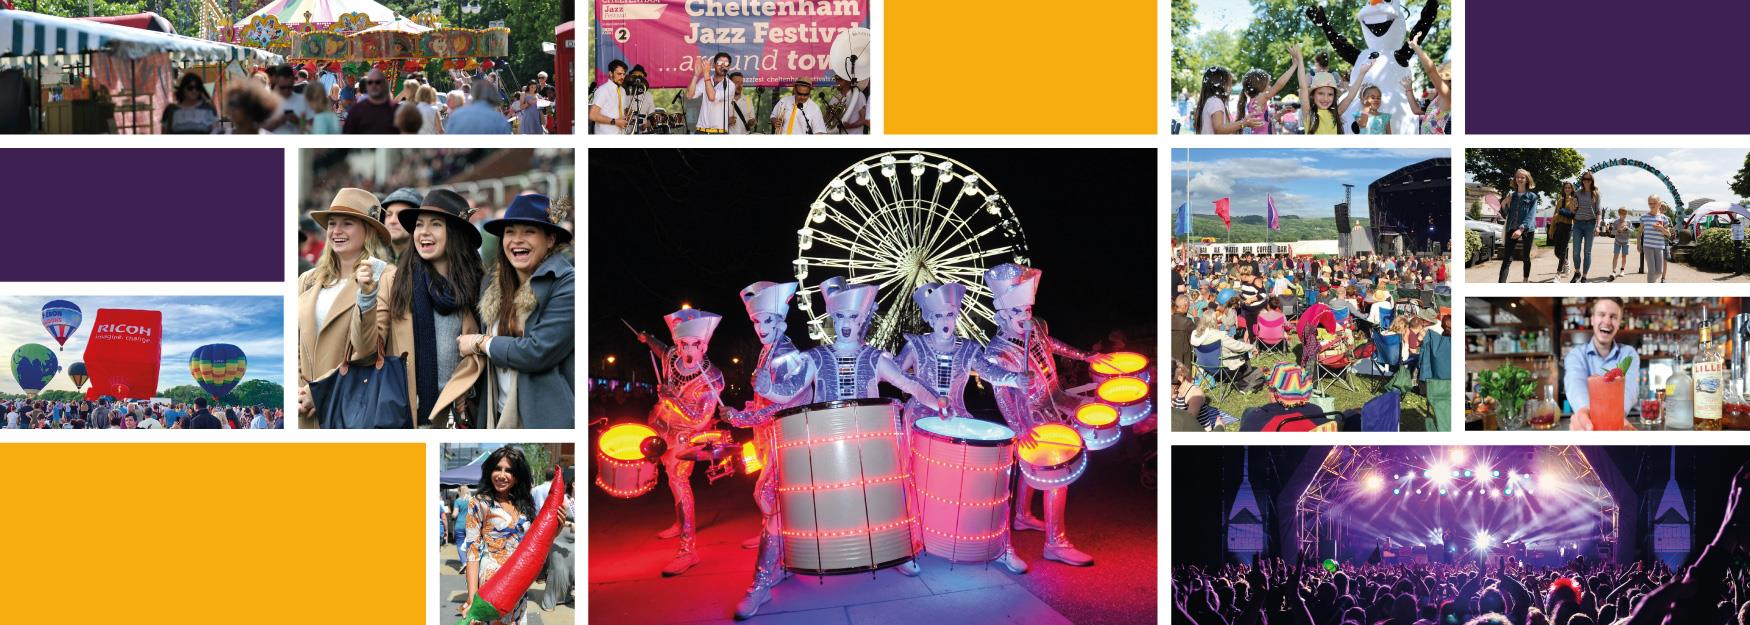 Collage of Cheltenham festivals and events